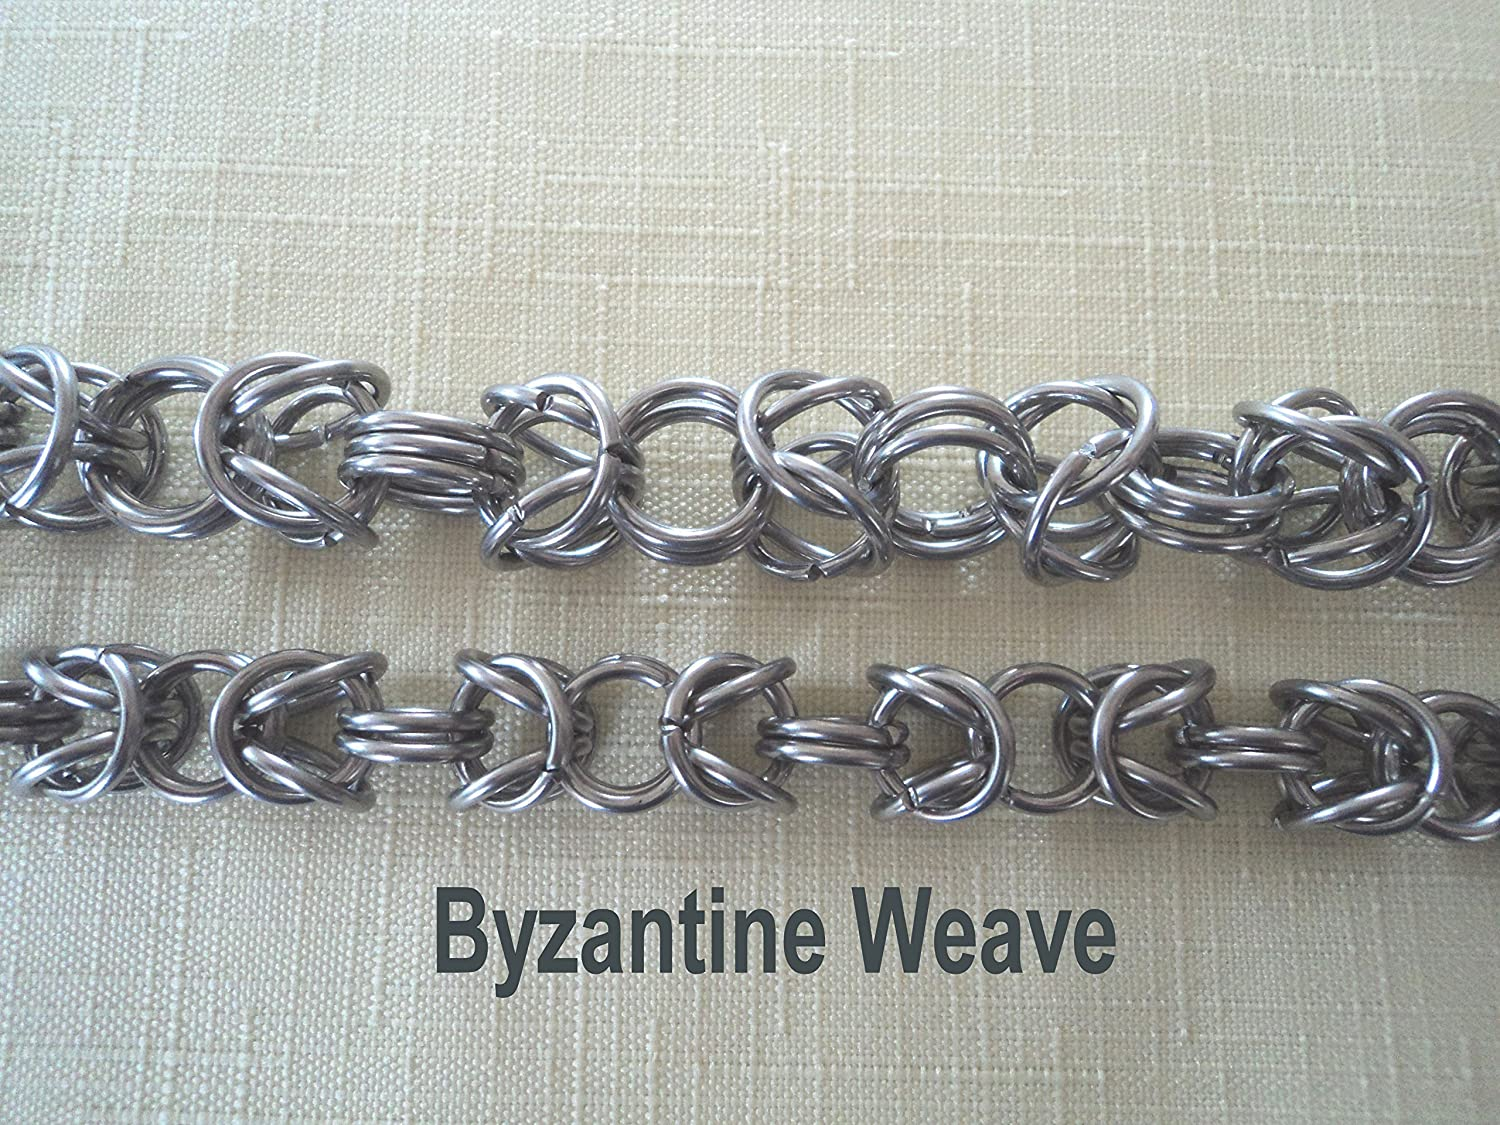 B01H5I0K4A 25 in Byzantine weave stainless steel wallet chain chainmail chain maille key chain biker A1y82NTmrLL